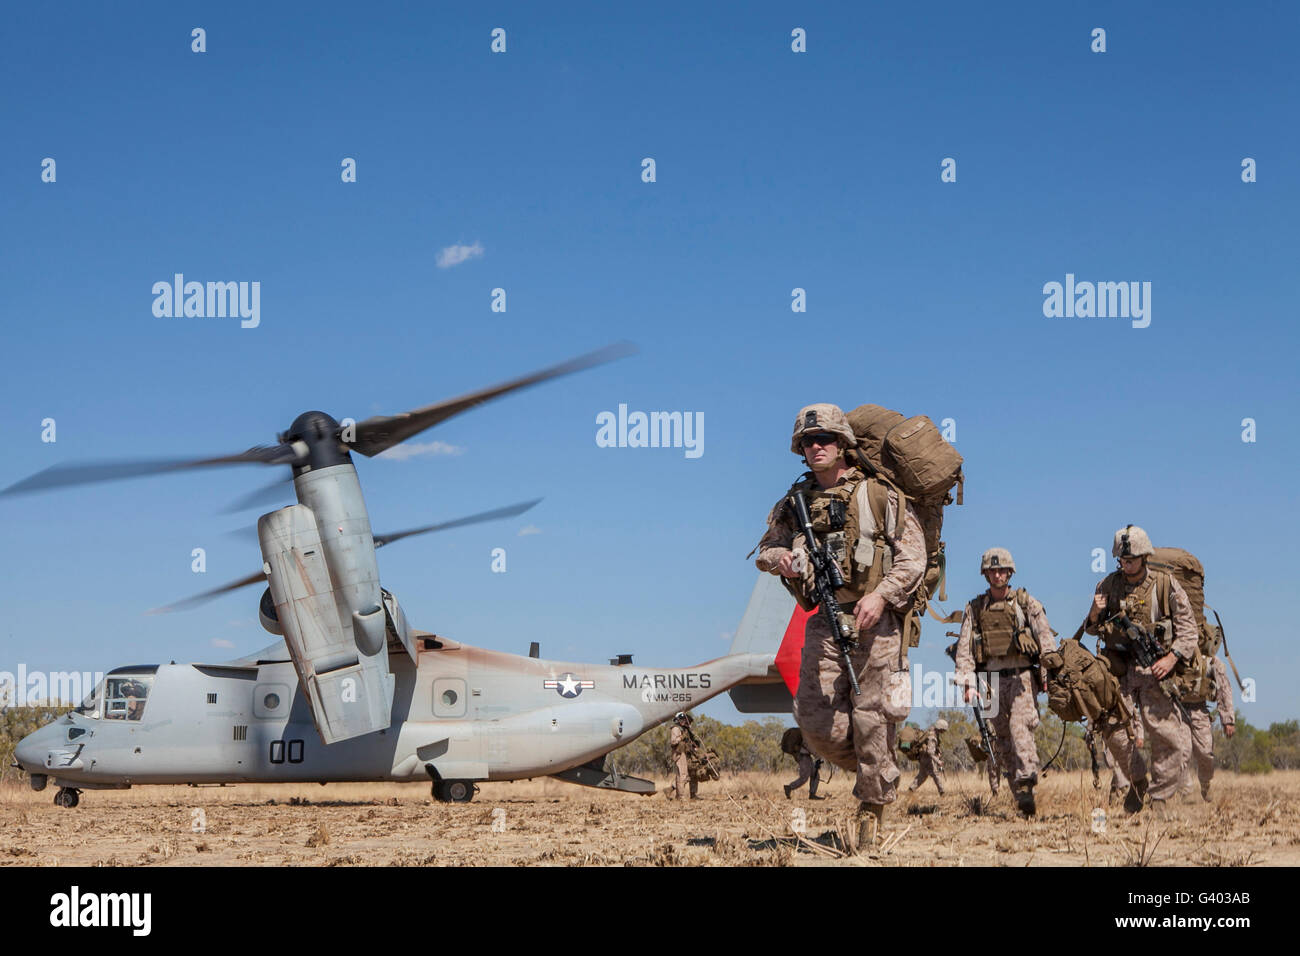 Marines and Sailors offload from a MV-22 Osprey. Stock Photo